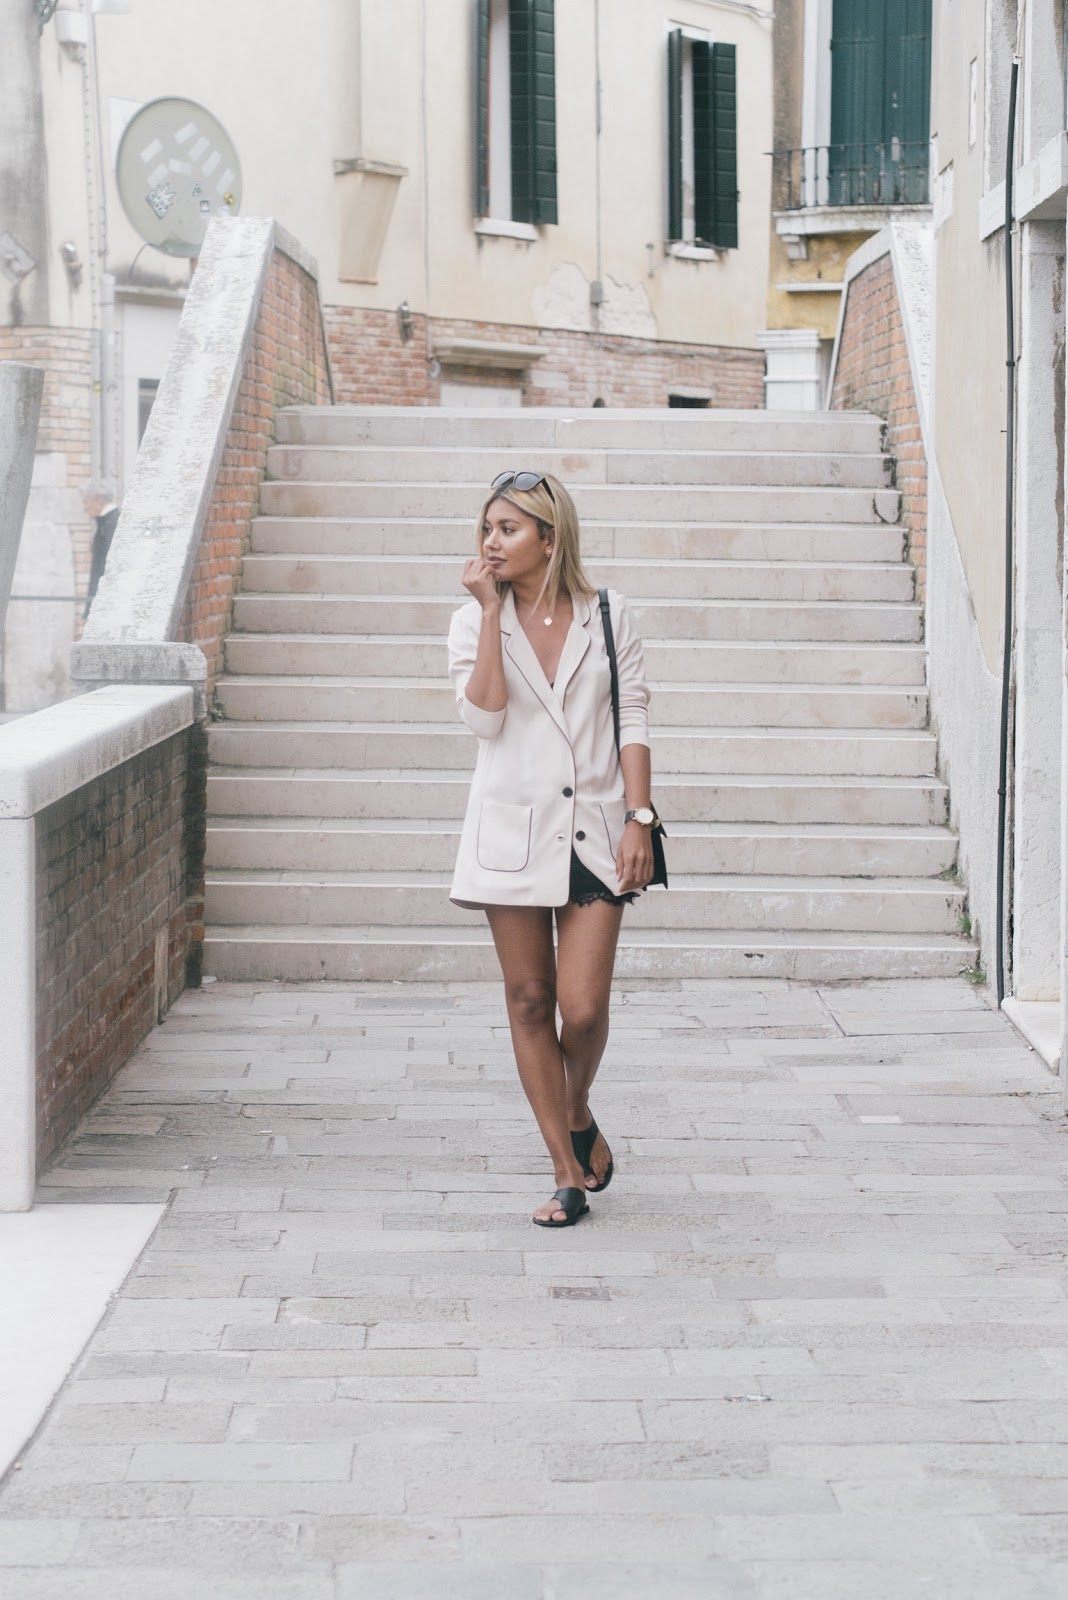 Cruise OOTD Part Two: Venice, Italy